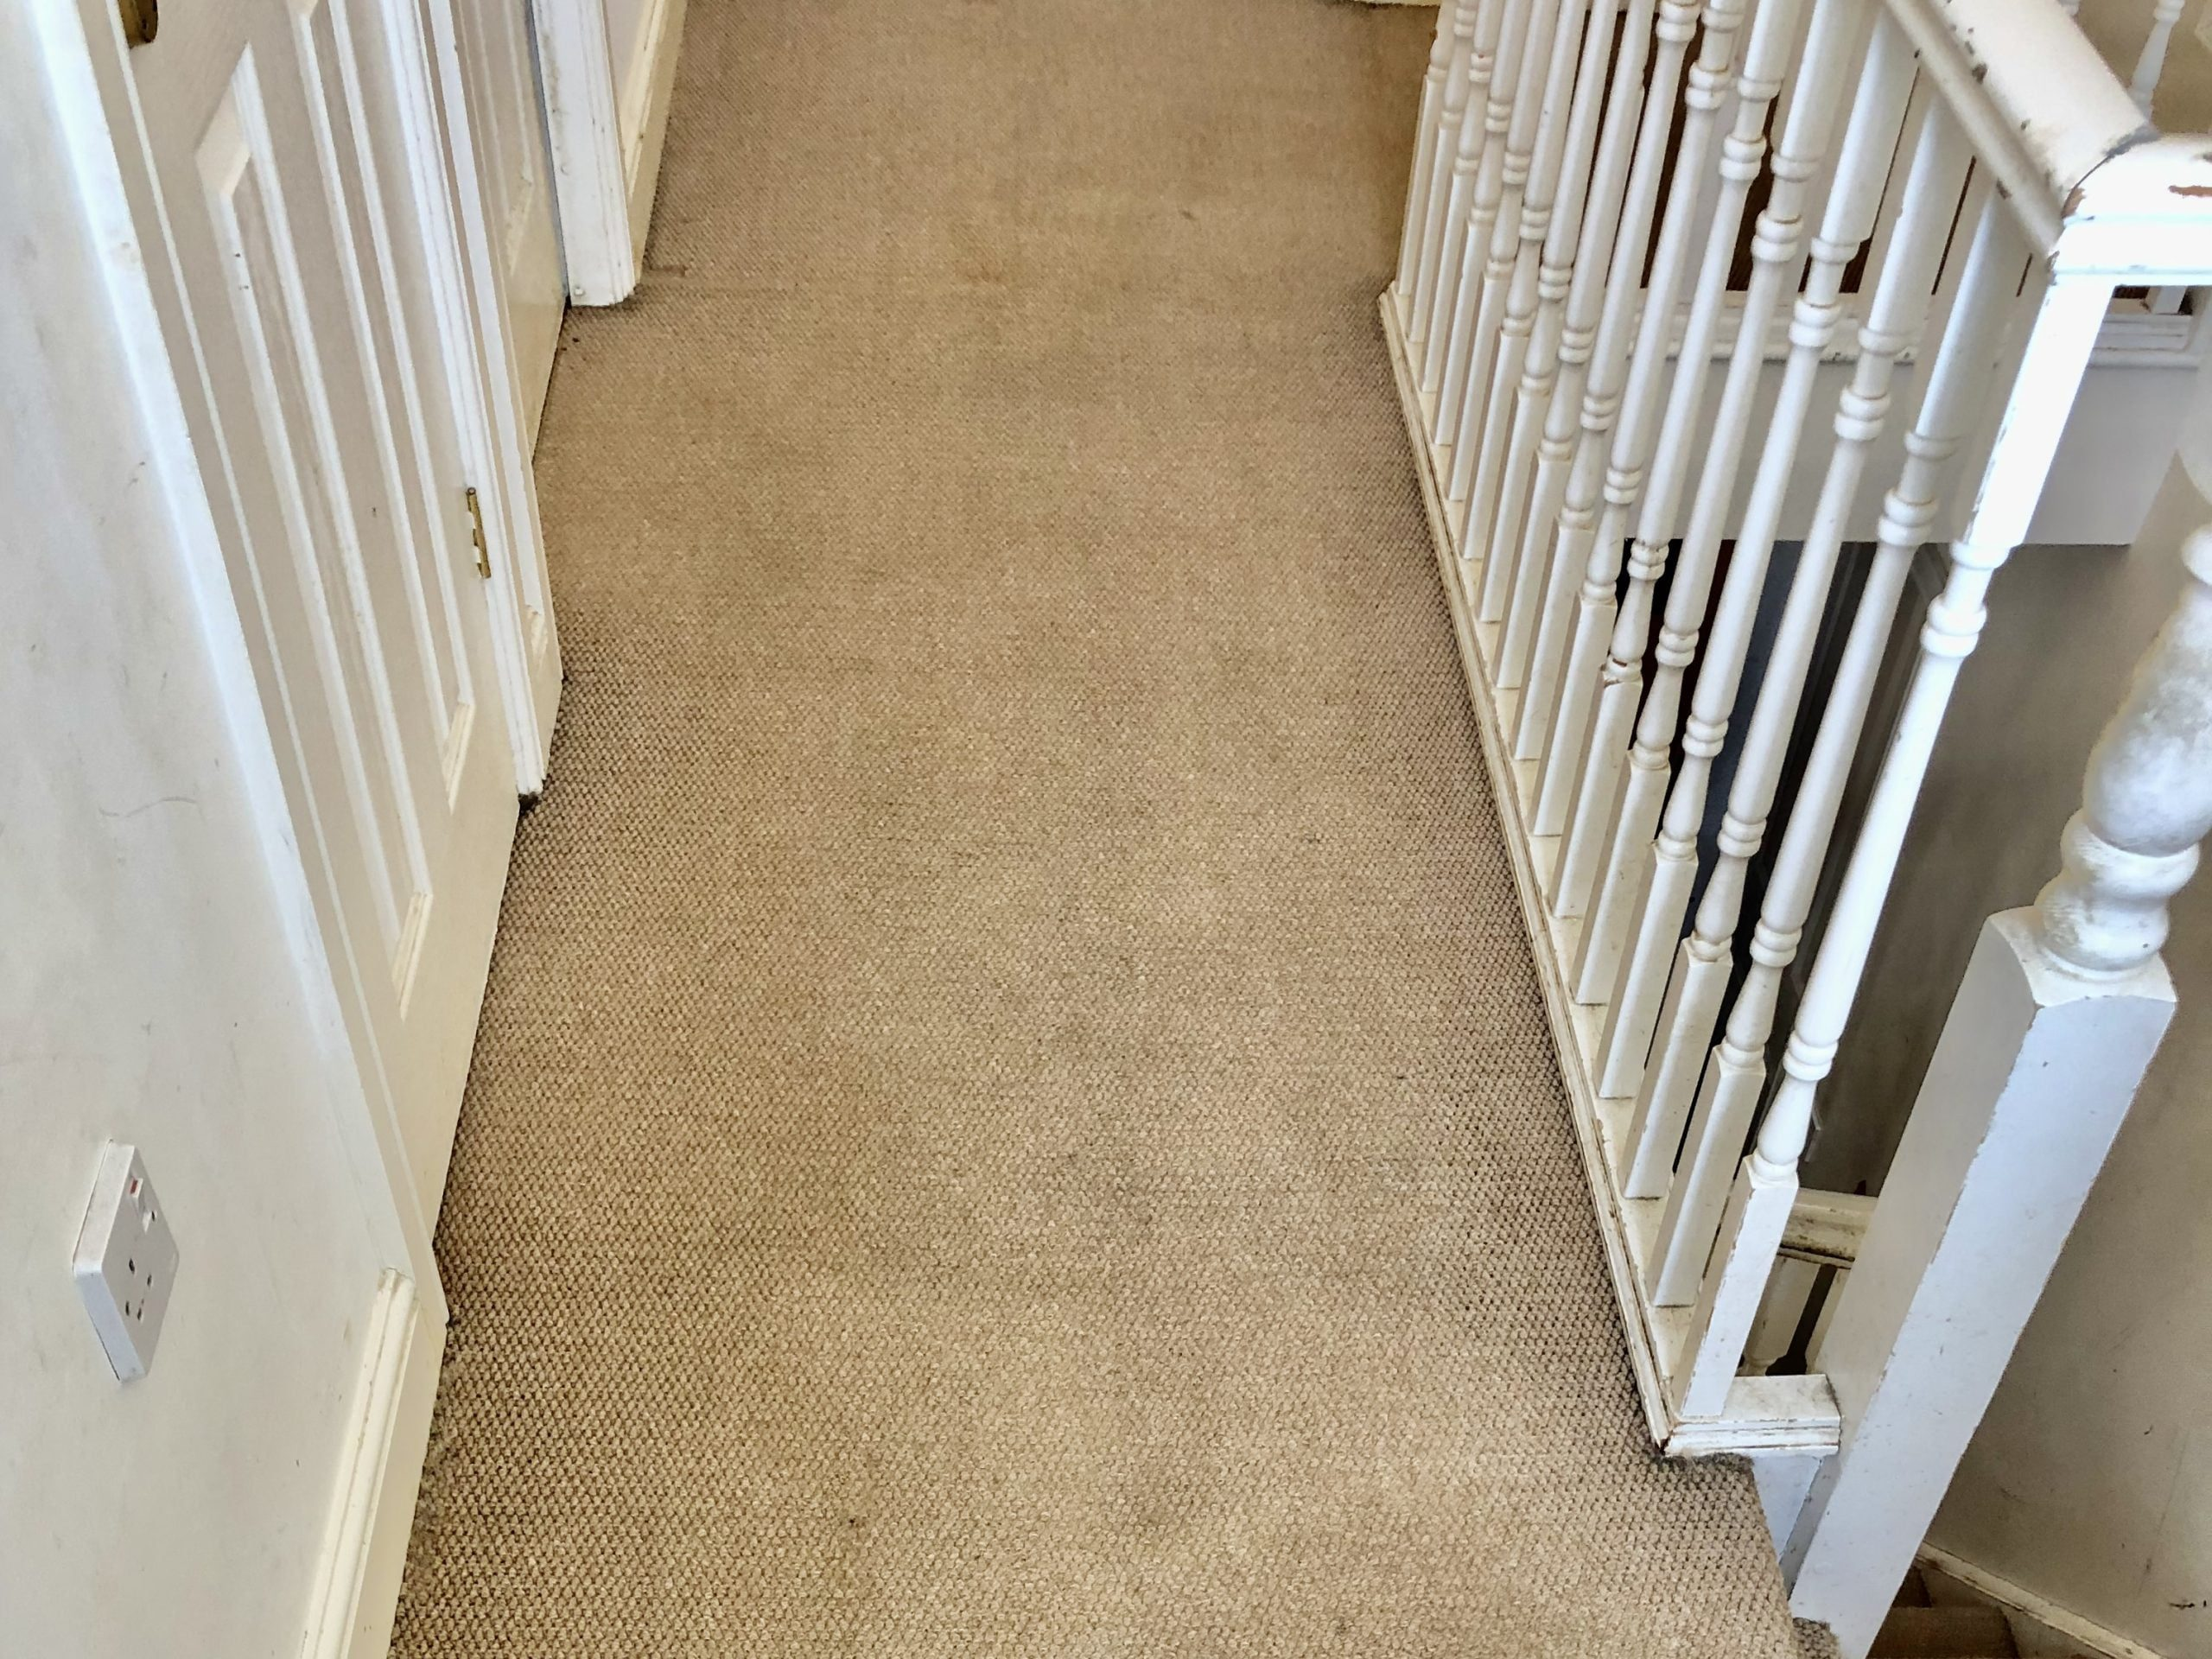 Carpet cleaning landing in Higham Ferrers After